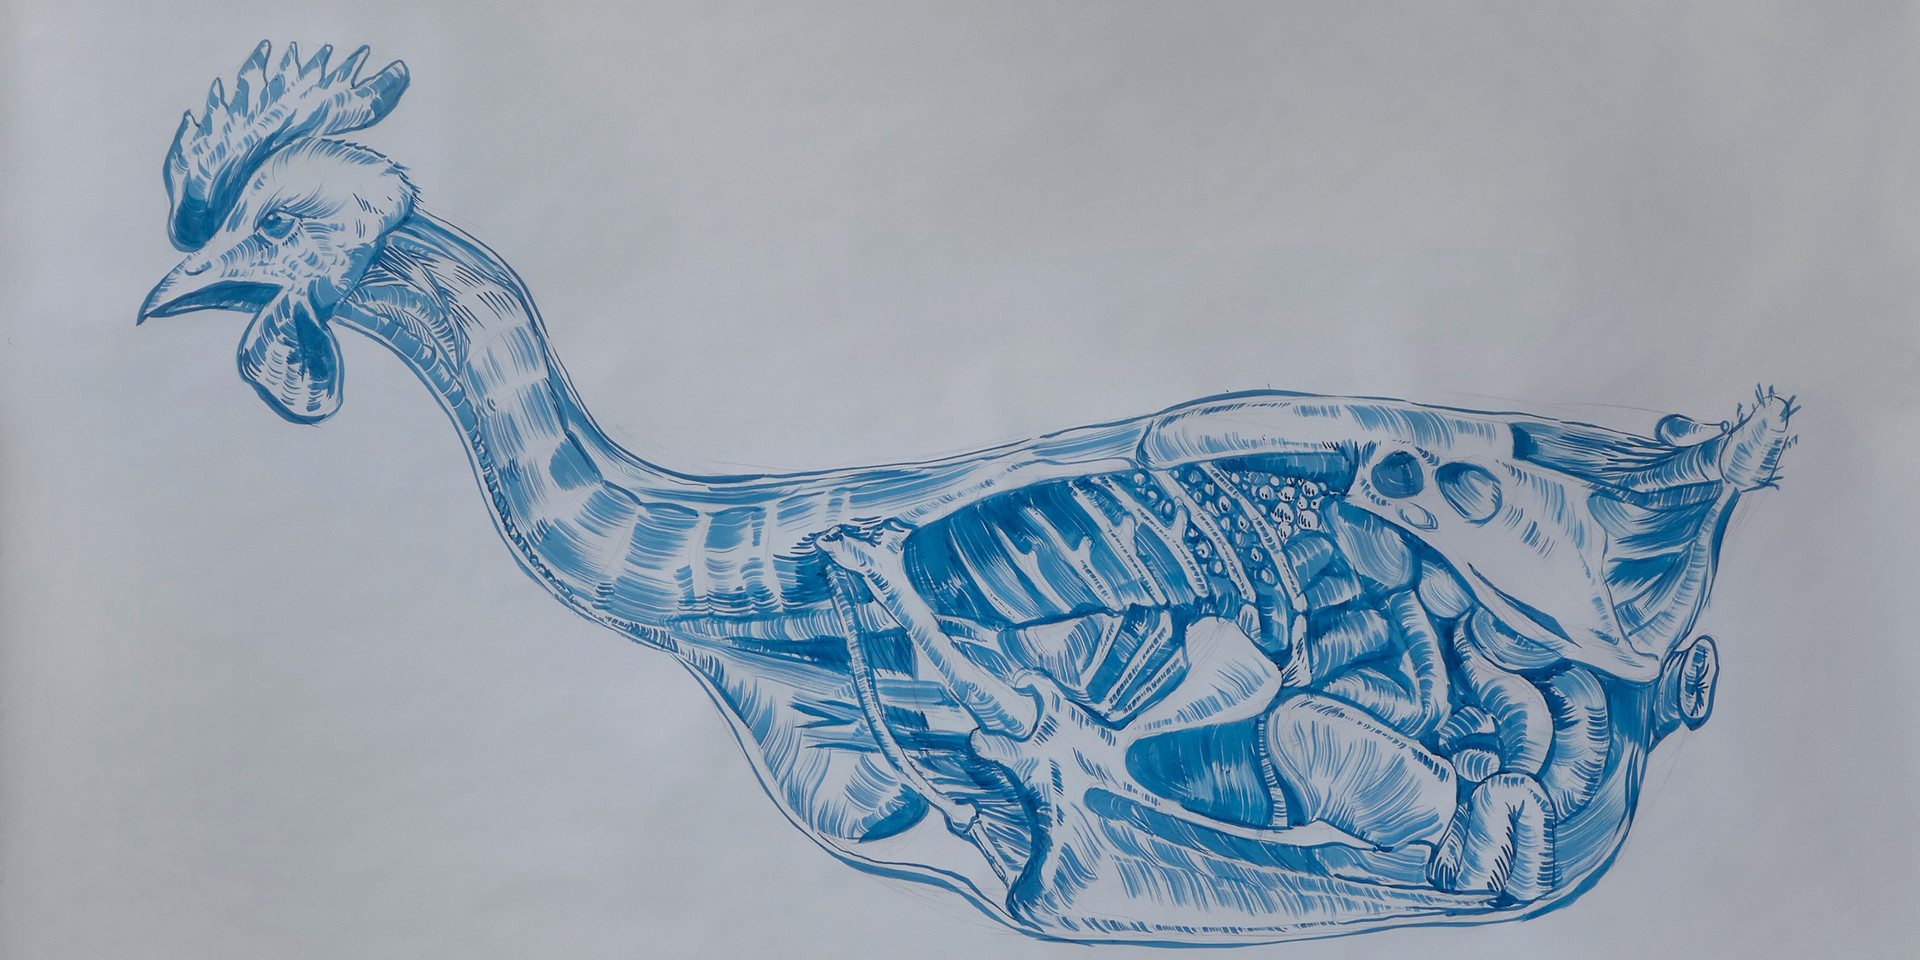 Topography of the Thoraco-Abdominal viscera in the Hen